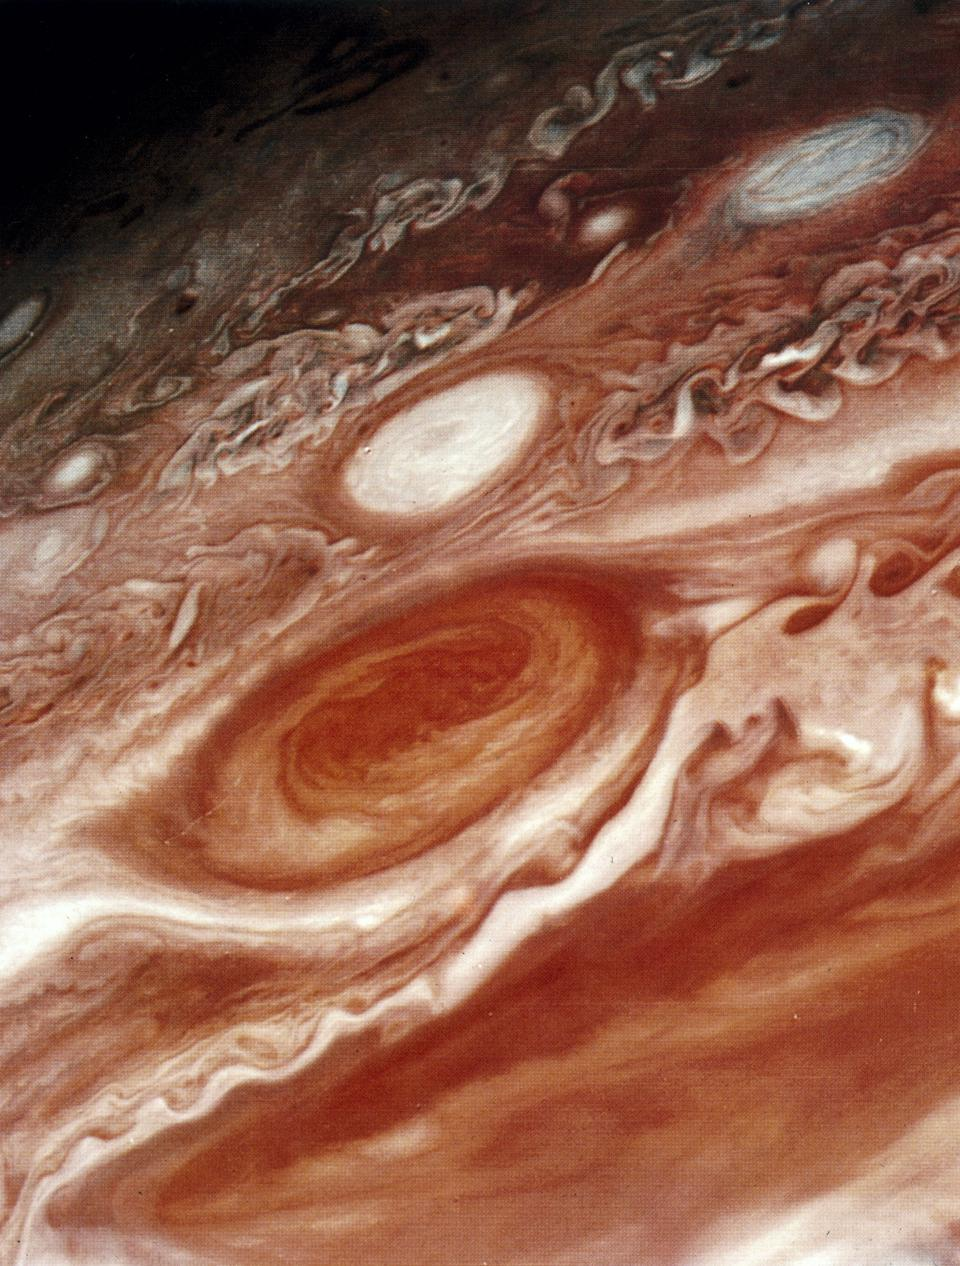 Voyager 1's close up of the Great Red Spot on Jupiter.